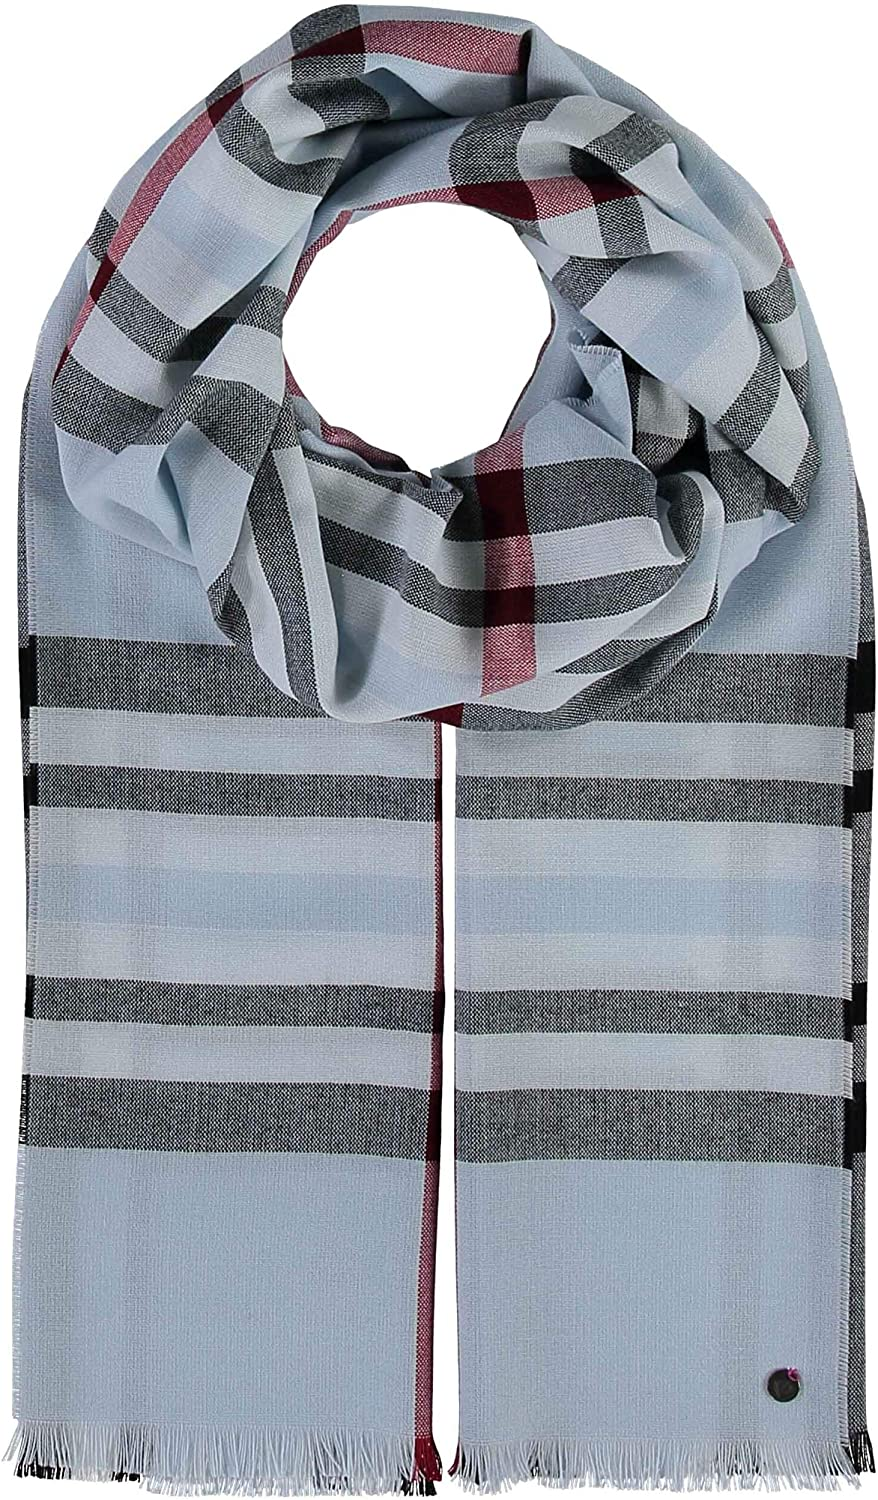 FRAAS Plaid Scarf Albuquerque Mall unisex - XXL Blanket with Modern Some reservation